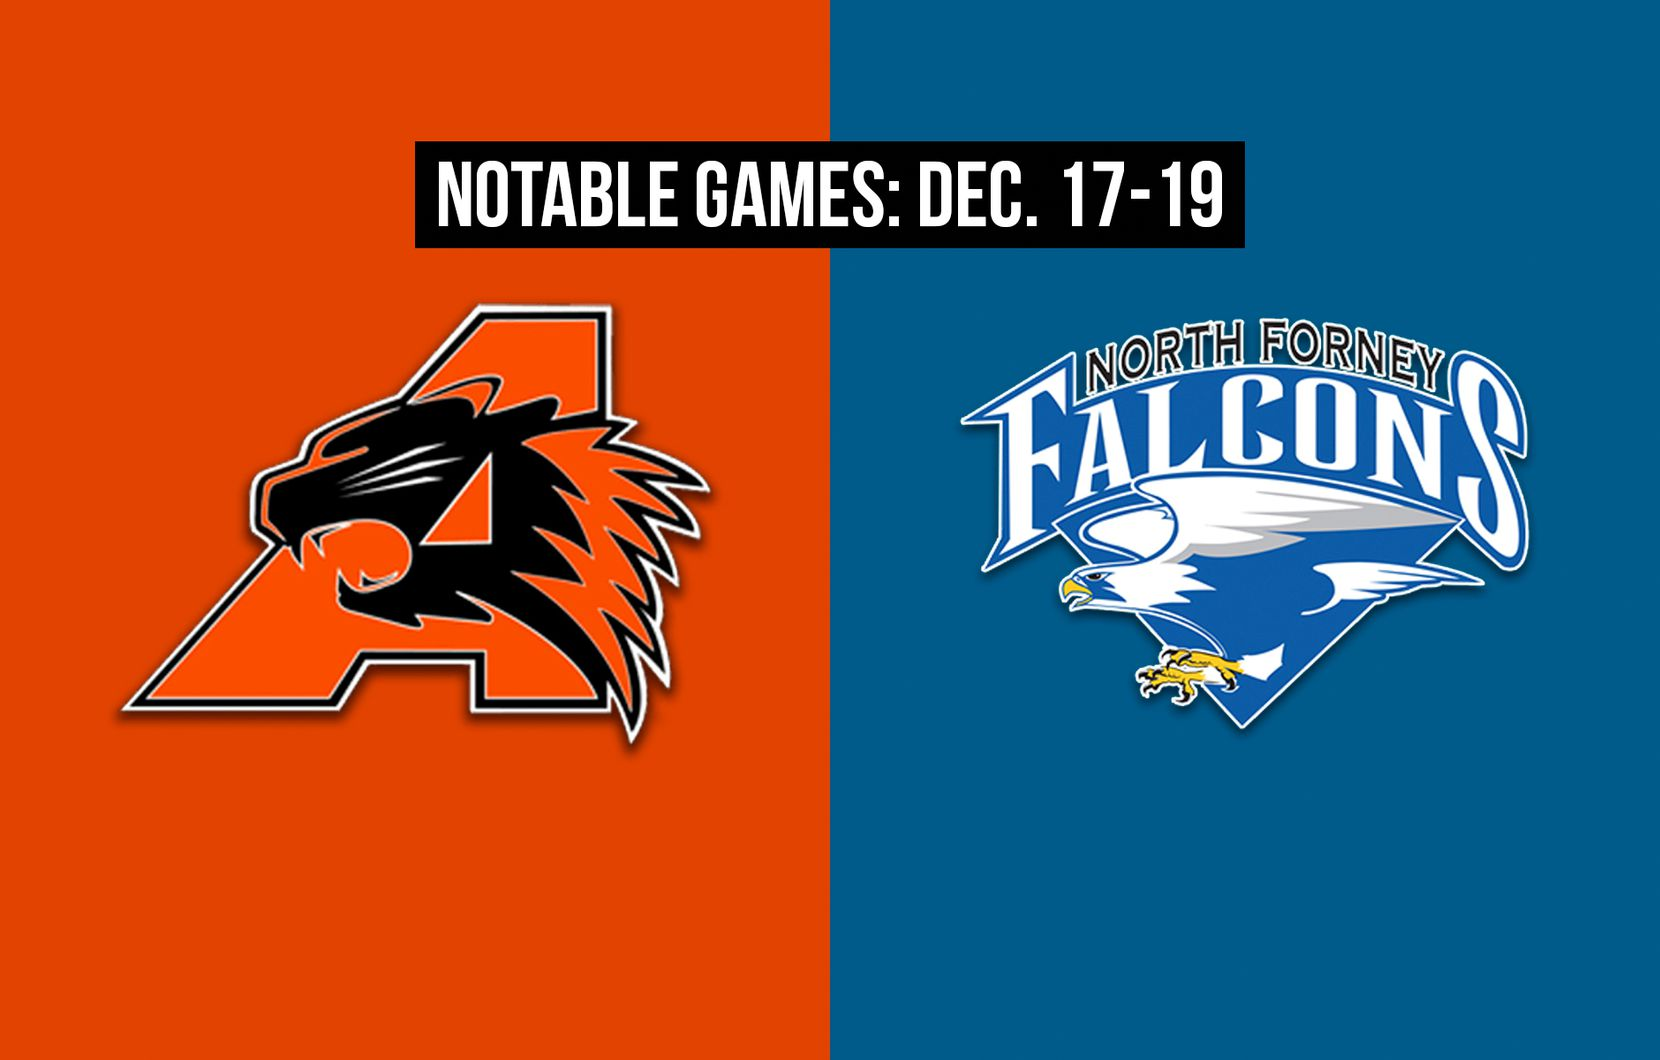 Notable games for the week of Dec. 17-19 of the 2020 season: Aledo vs. North Forney.